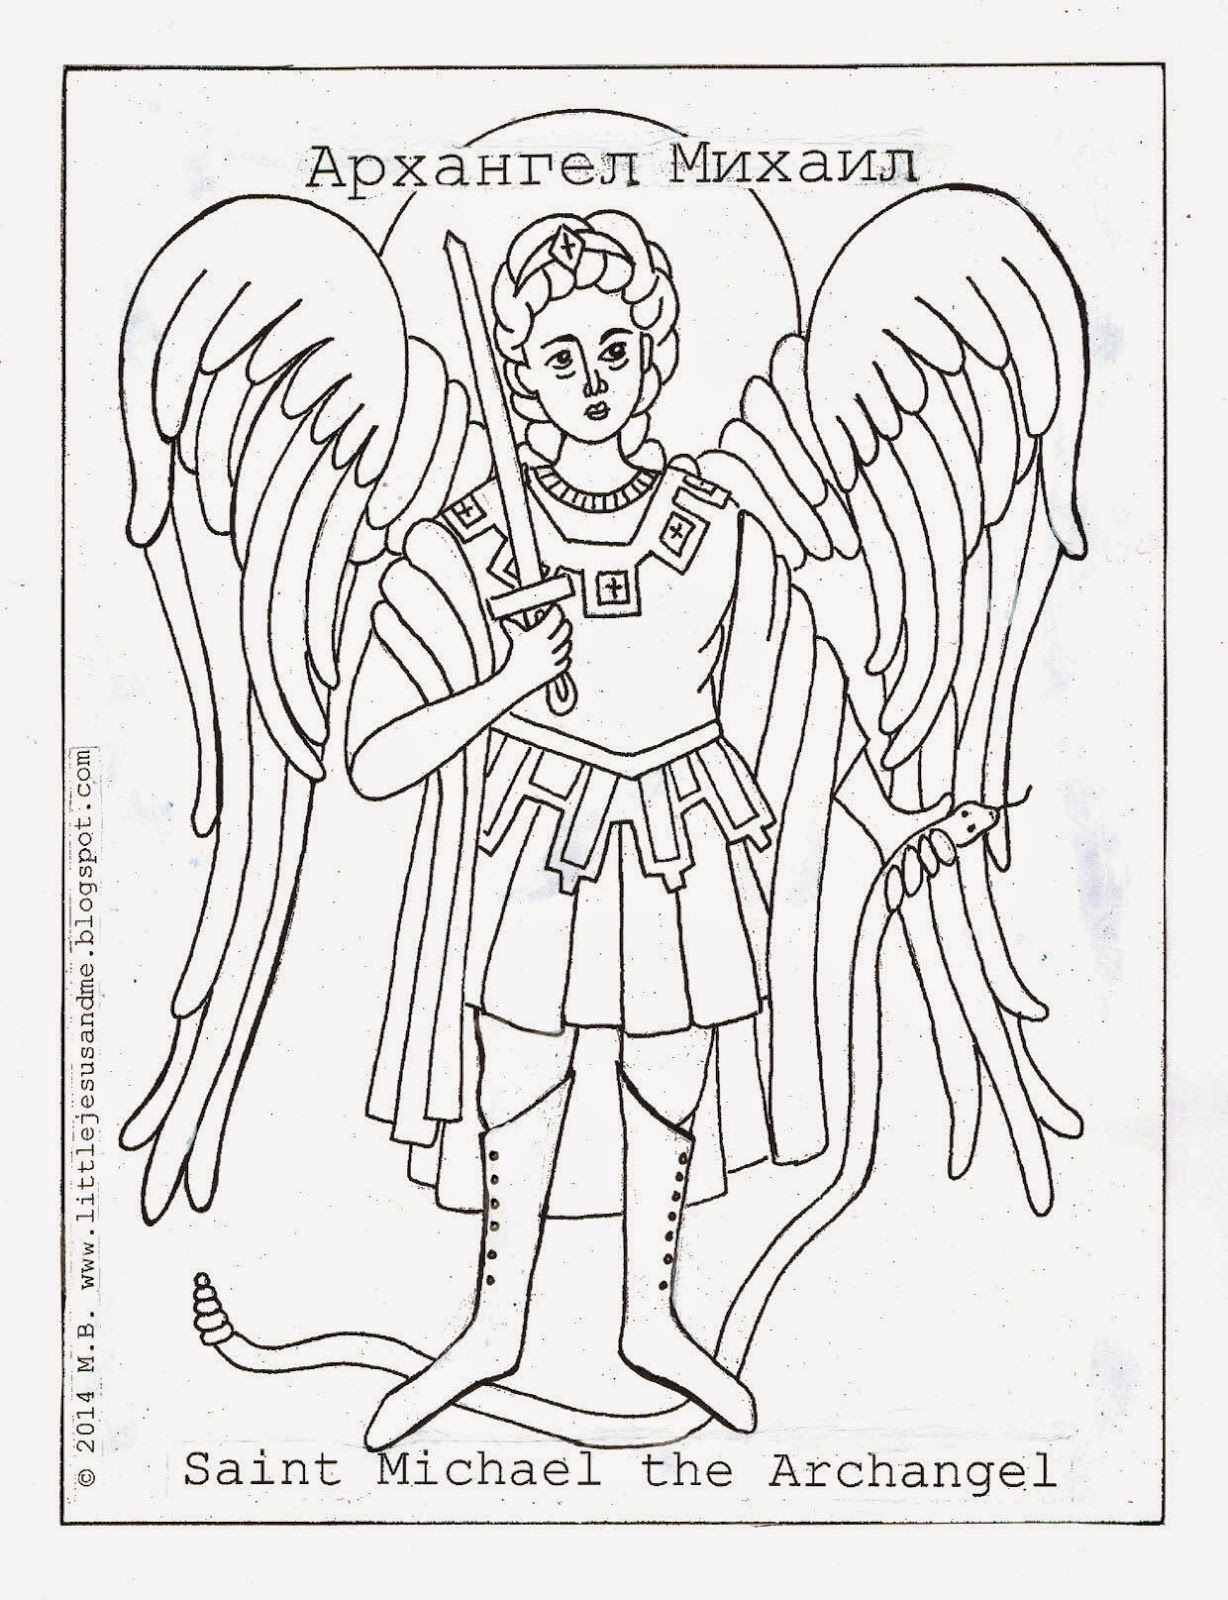 archangel michael coloring page archangel michael coloring download archangel michael